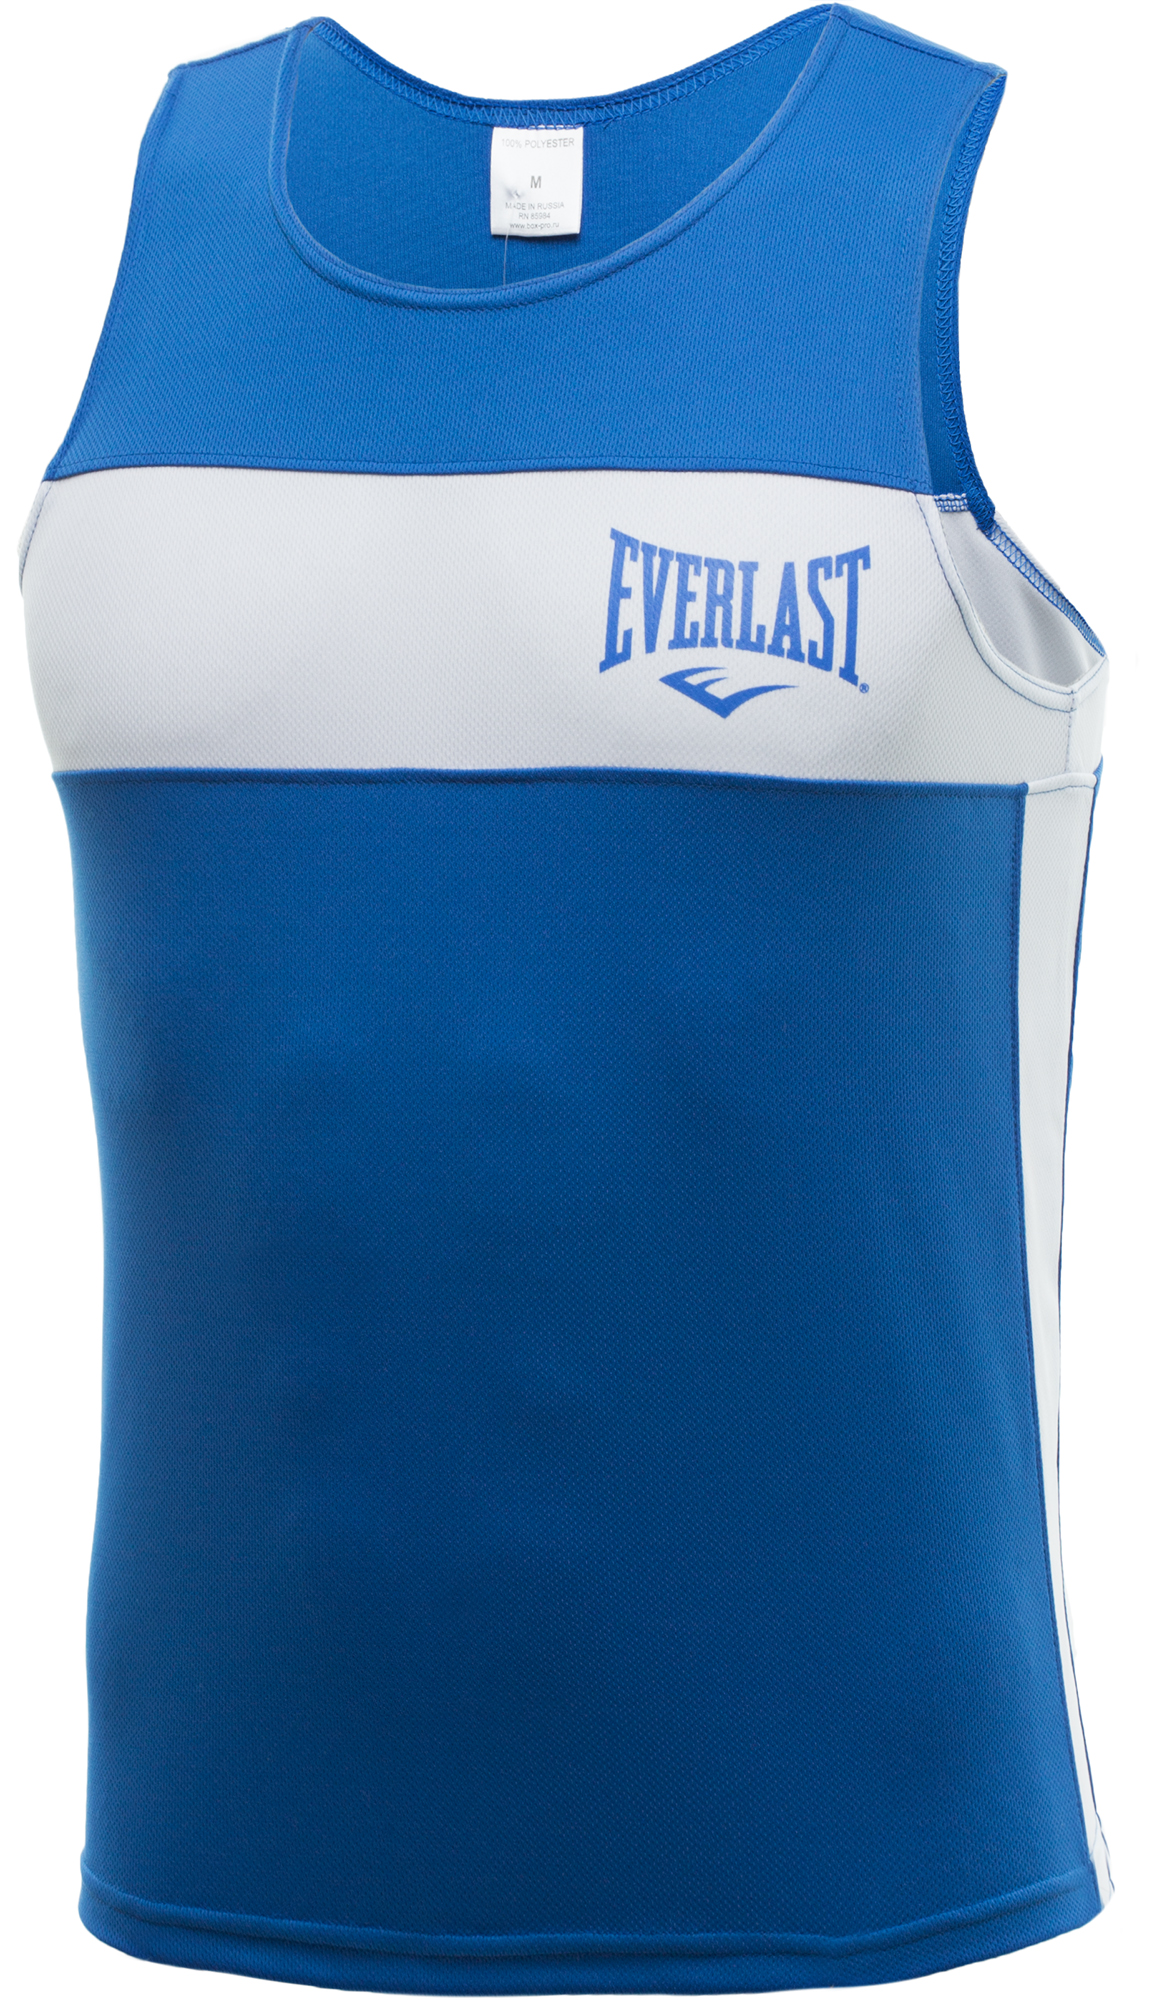 цена на Everlast Майка для бокса Everlast Elite, размер 50